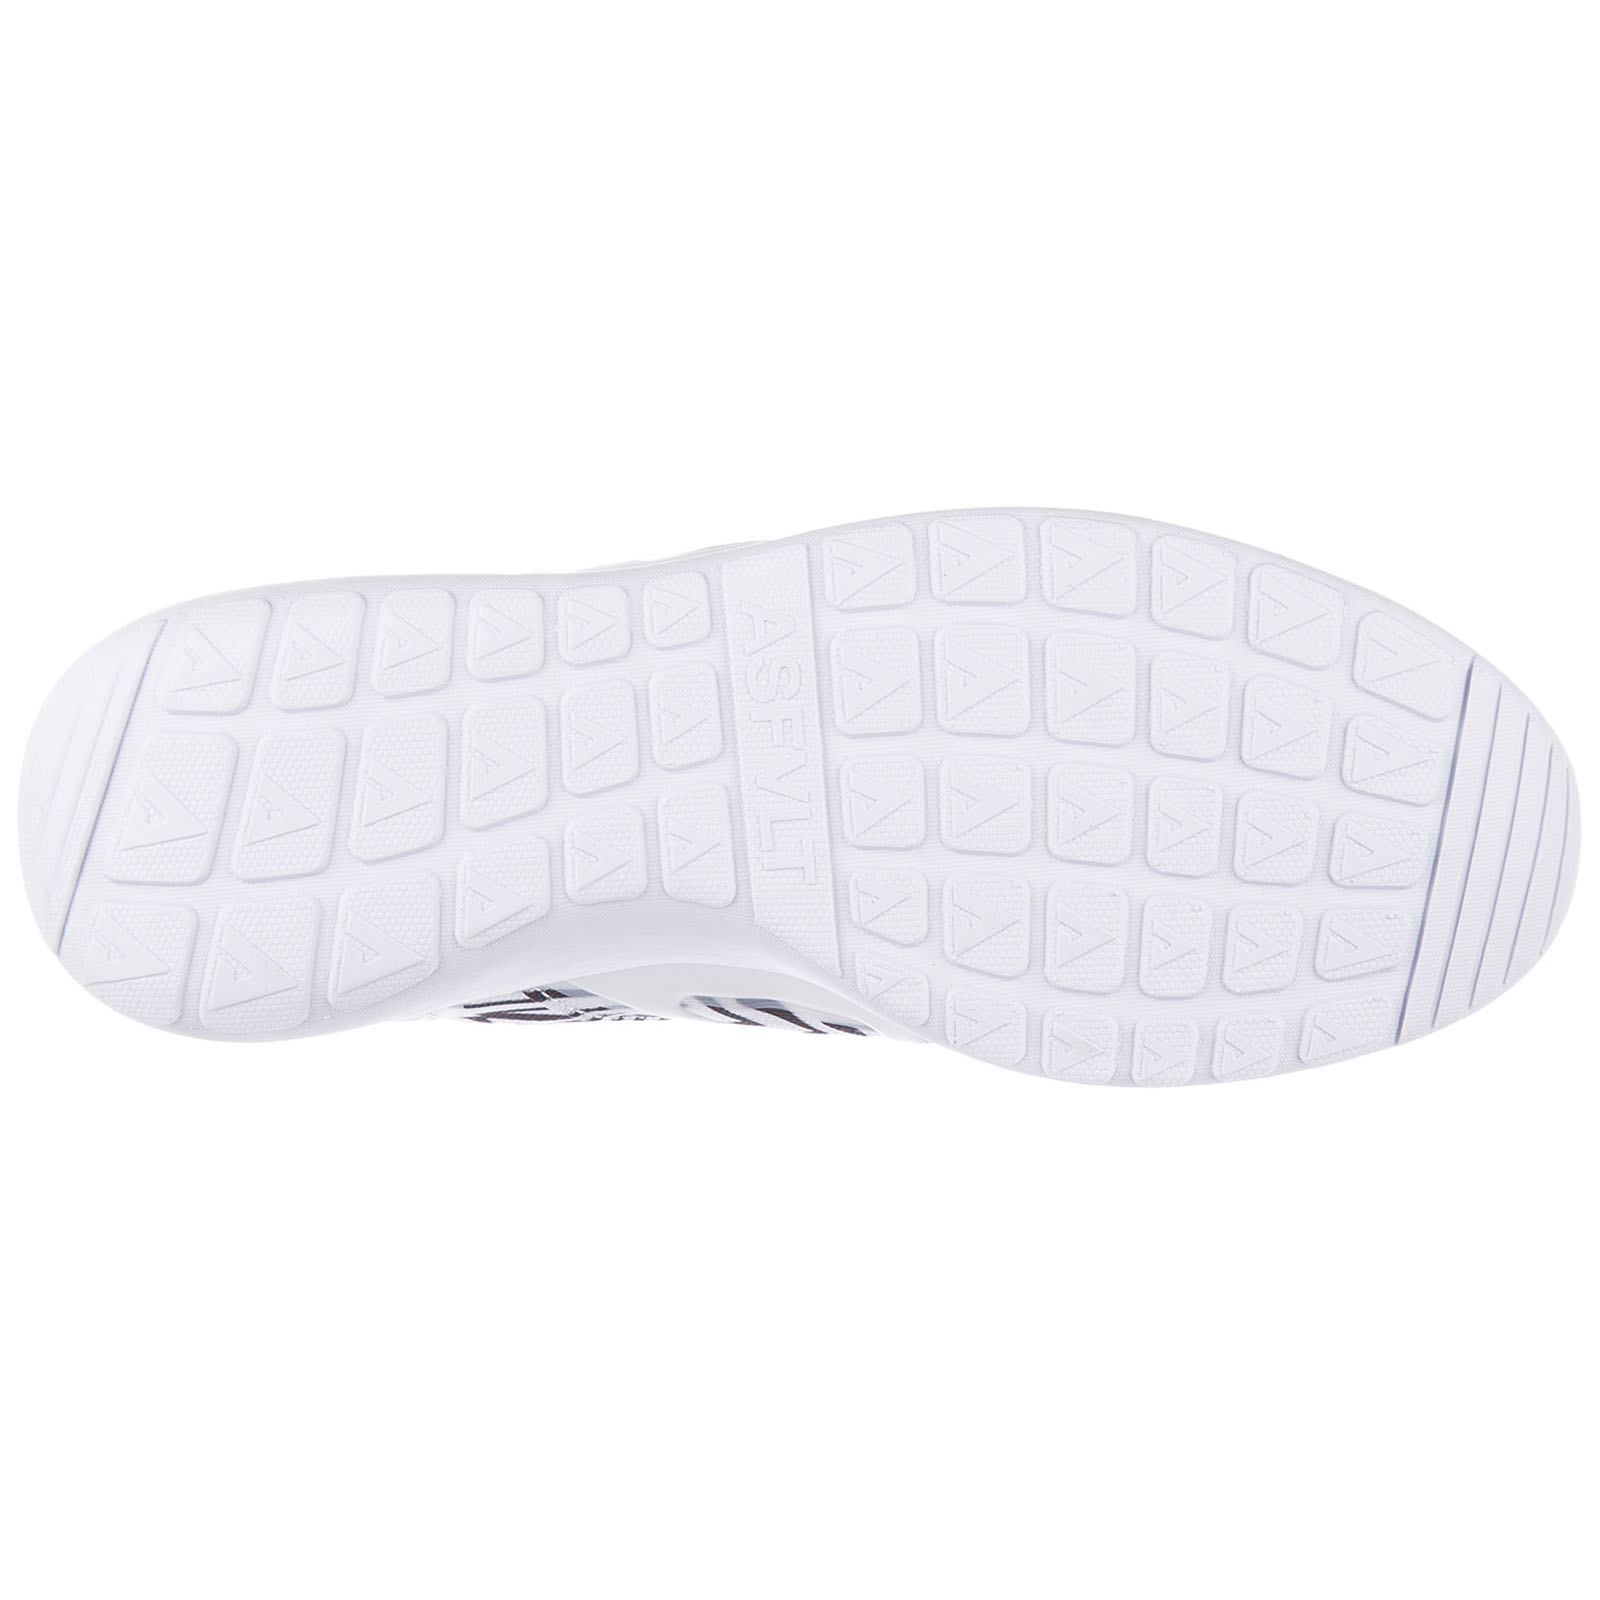 Women's shoes trainers sneakers